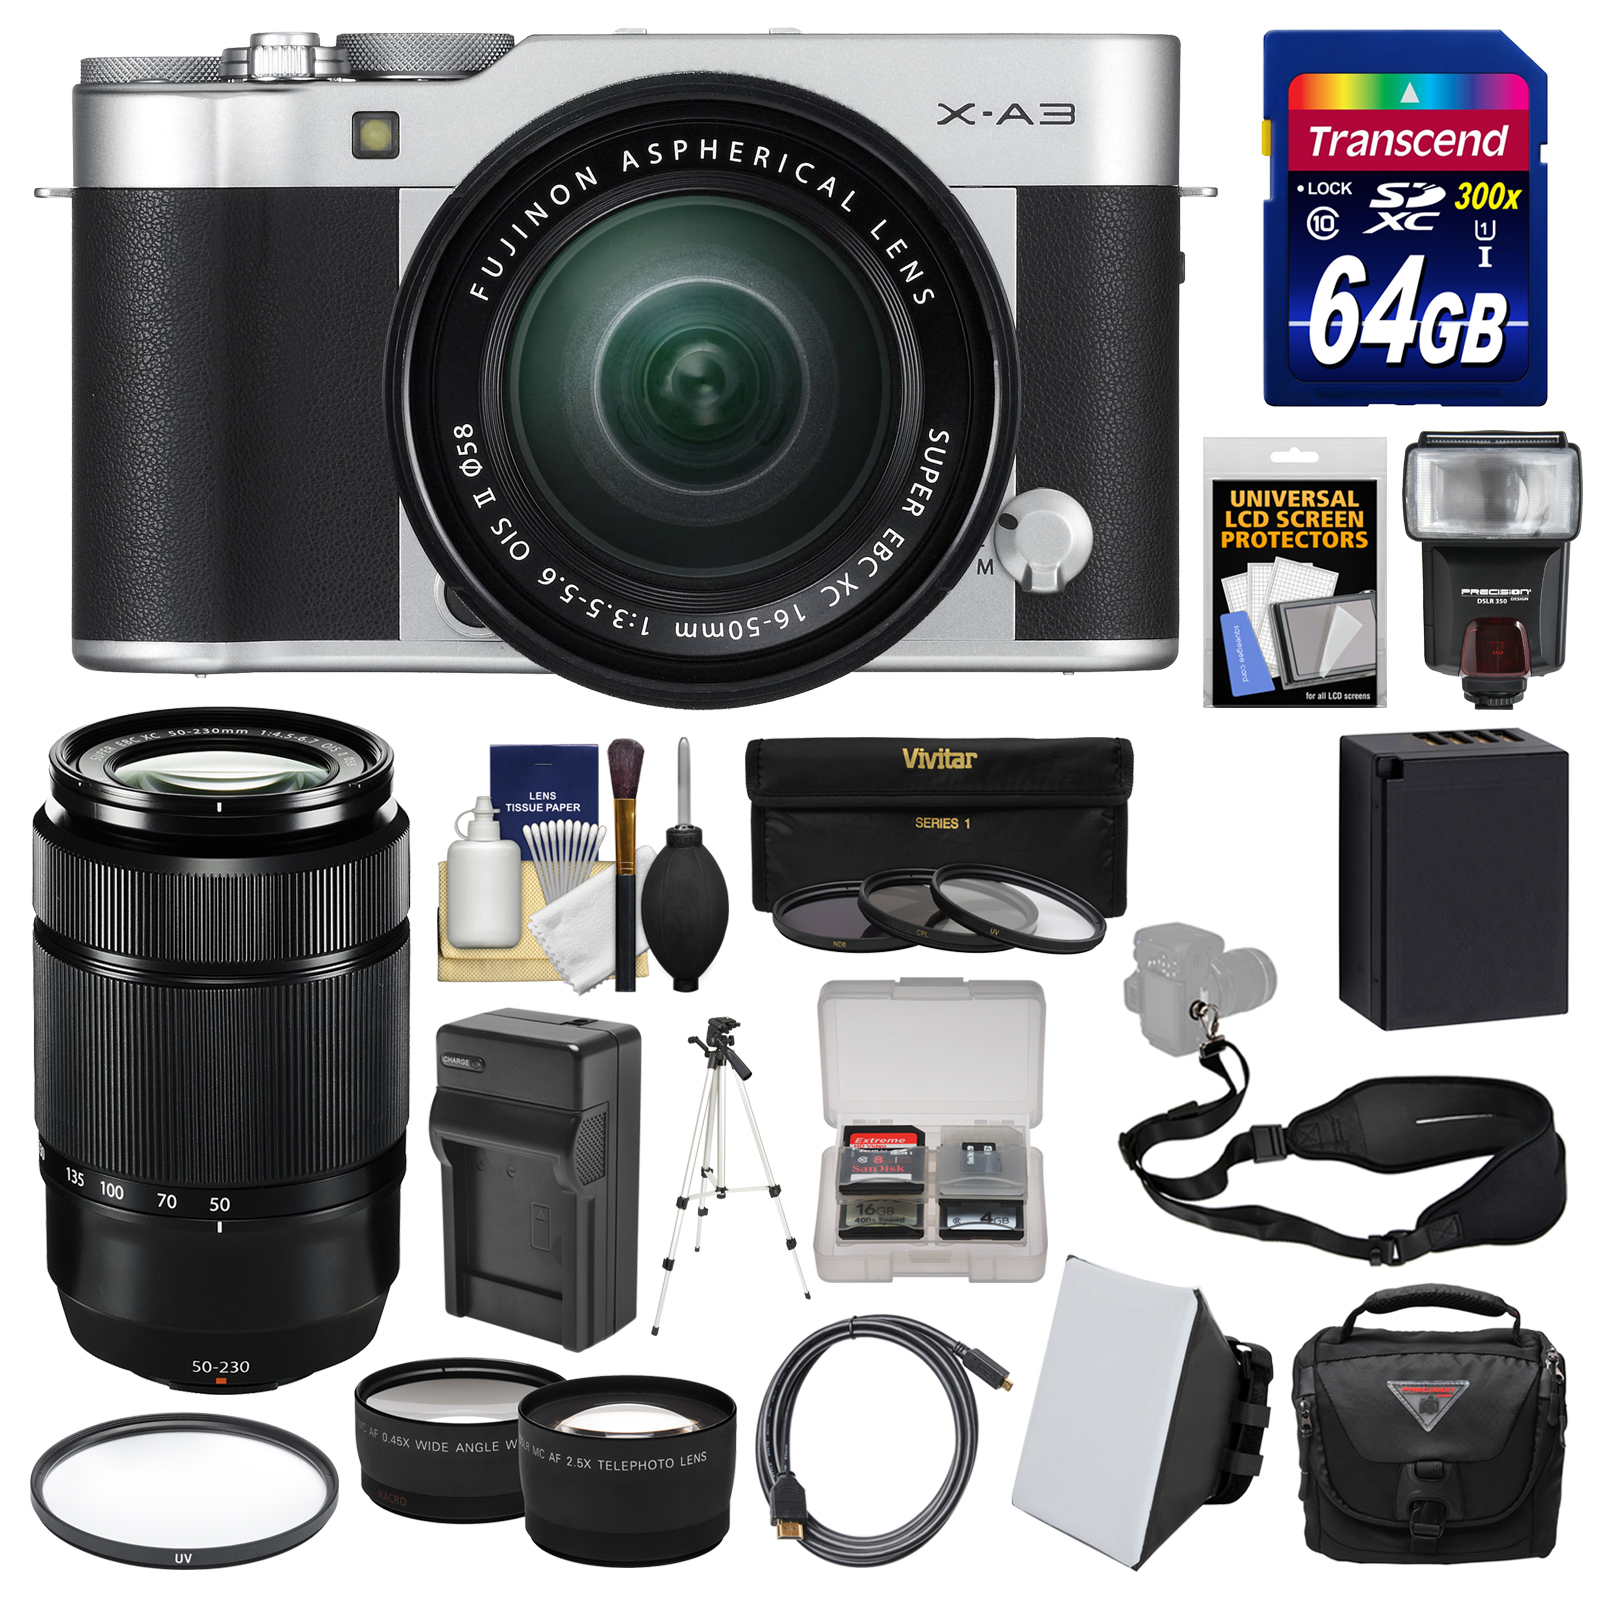 Fujifilm X-A3 Wi-Fi Digital Camera & 16-50mm II XC Lens (Silver) + 50-230